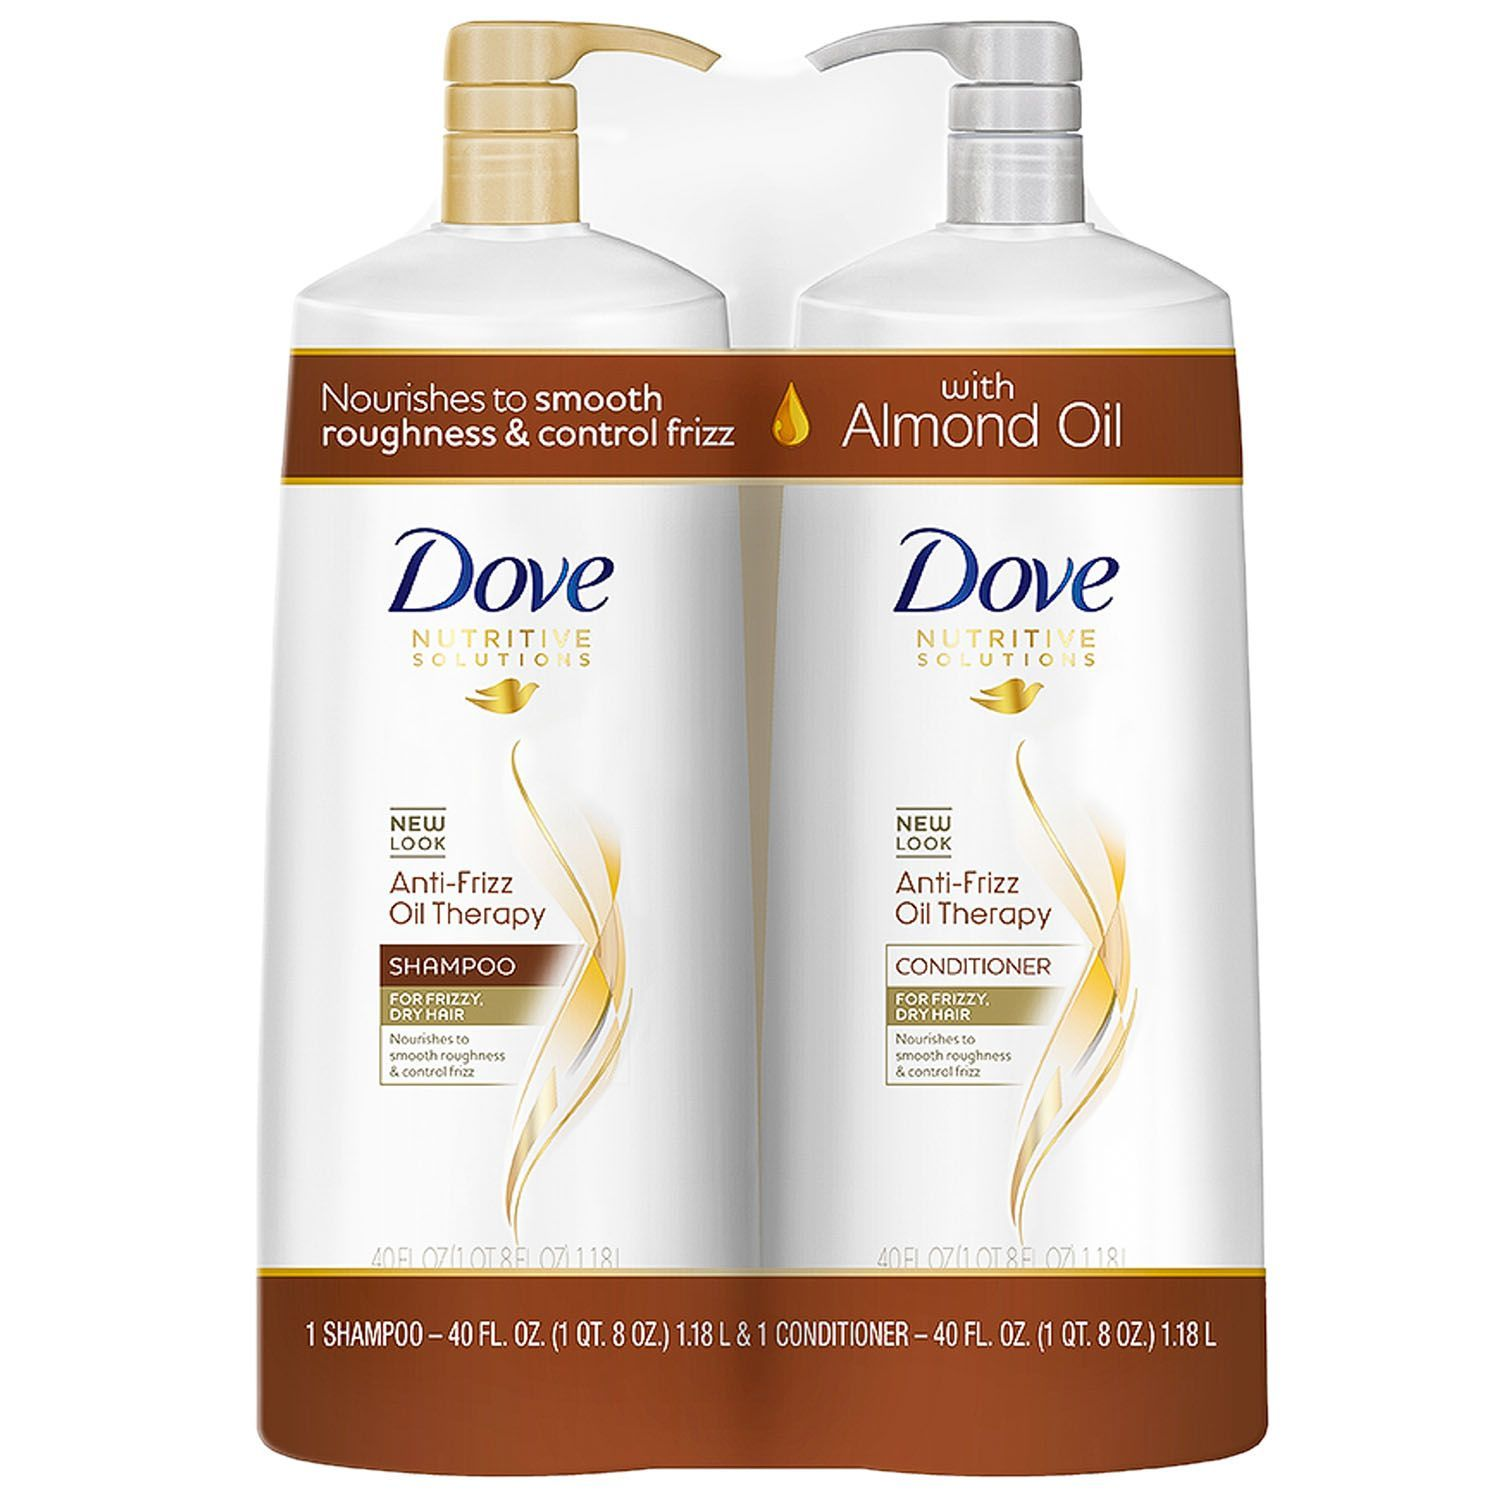 Dove Anti-Frizz Oil Therapy Shampoo & Conditioner 40 fl. oz./ 1.18 l, 2 pk